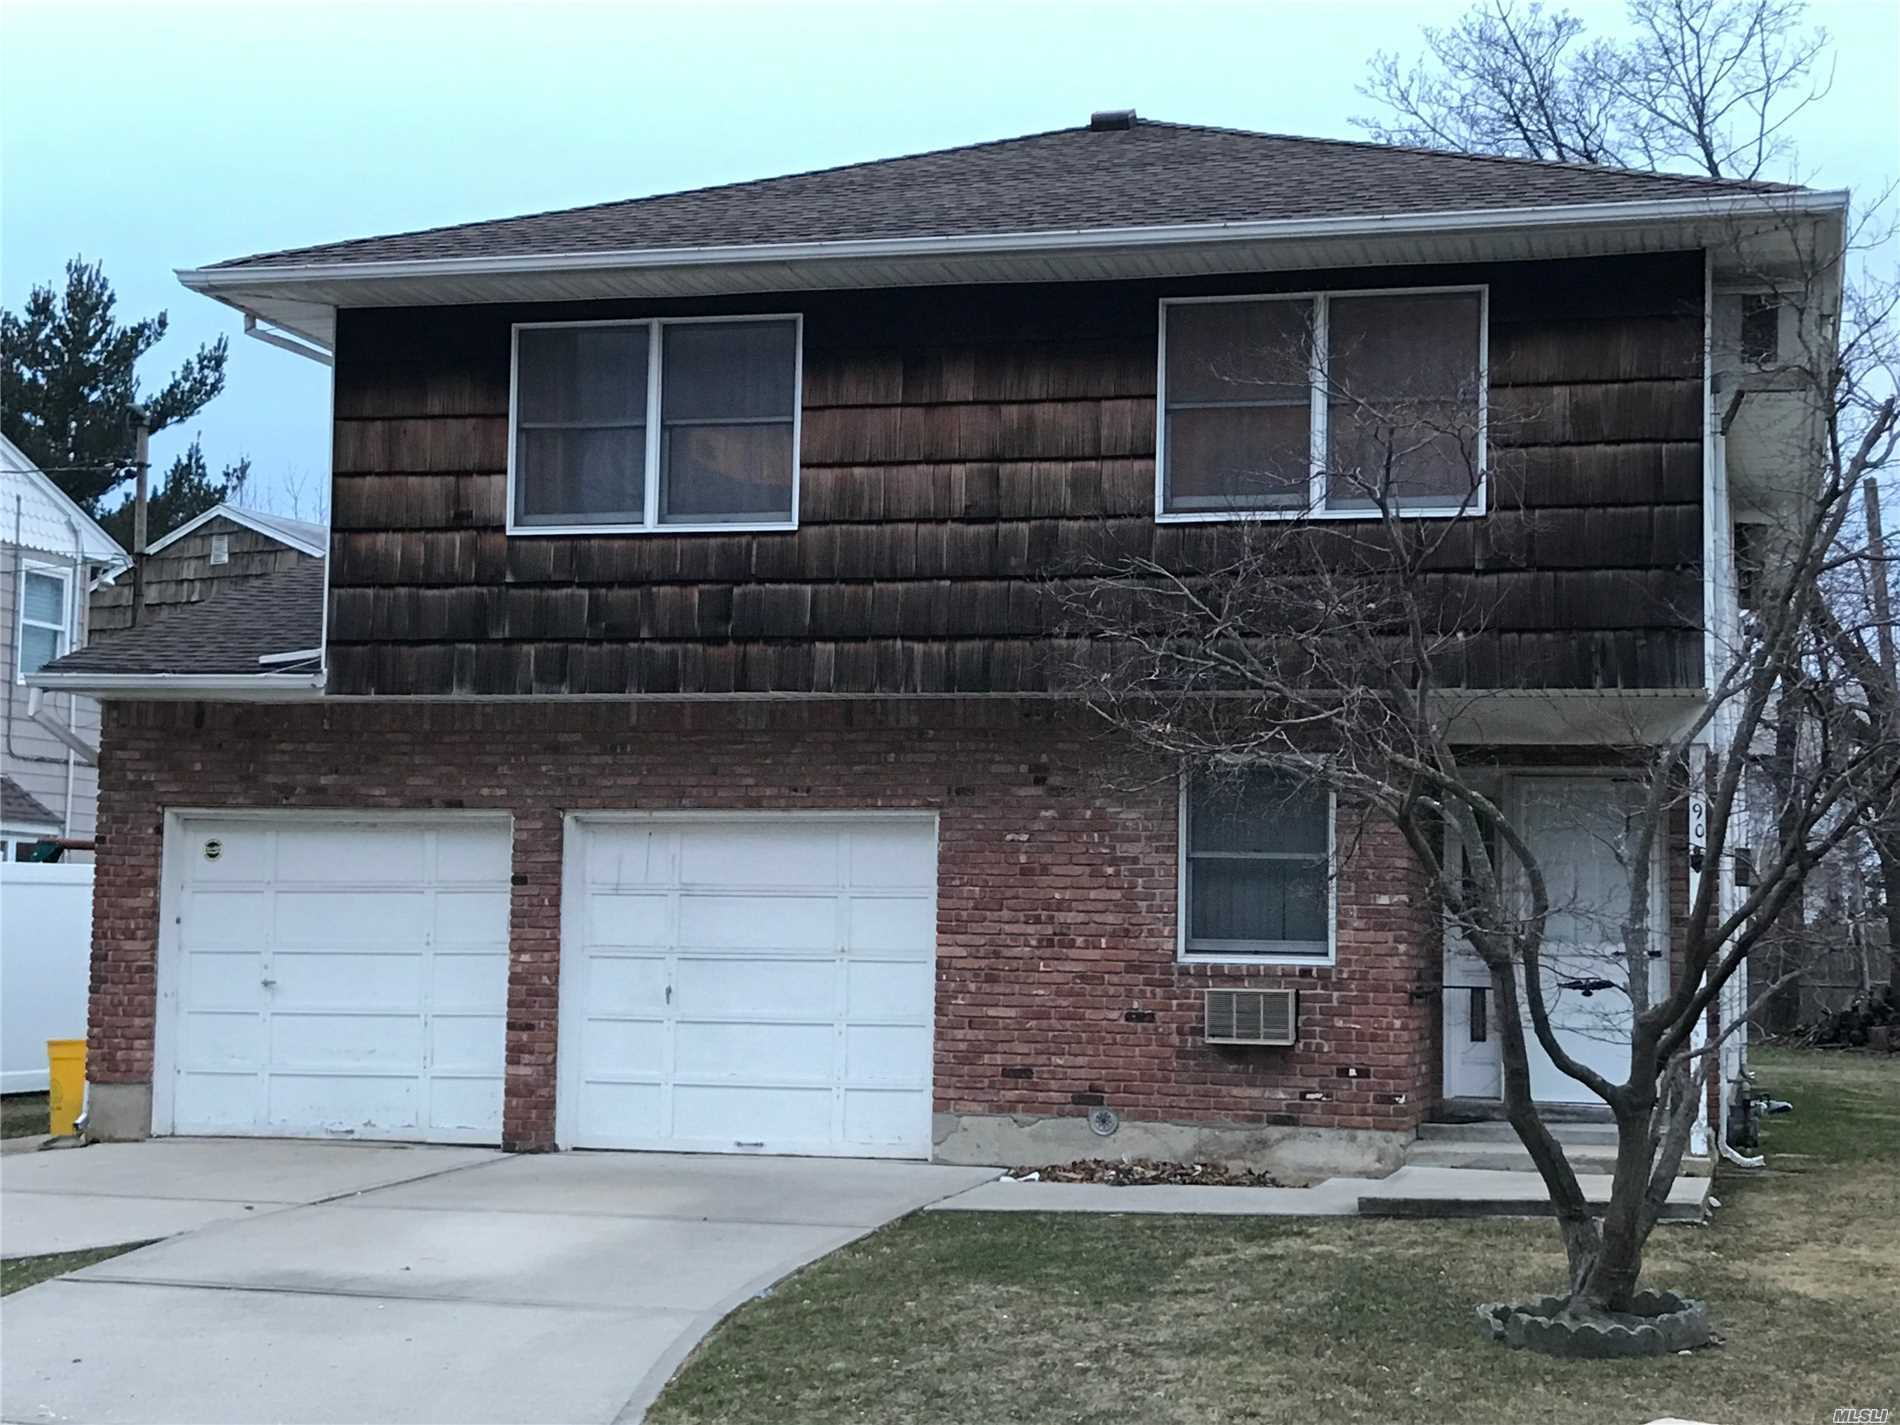 Come see the lights on Broadway. This 5 bedroom, 3 bath home located in the heart of Hewlett, is near train, schools and town. Live in your income producing property and enjoy the large backyard in the beautiful upcoming months. There is a large 2 car garage and private driveways. This home won't last.